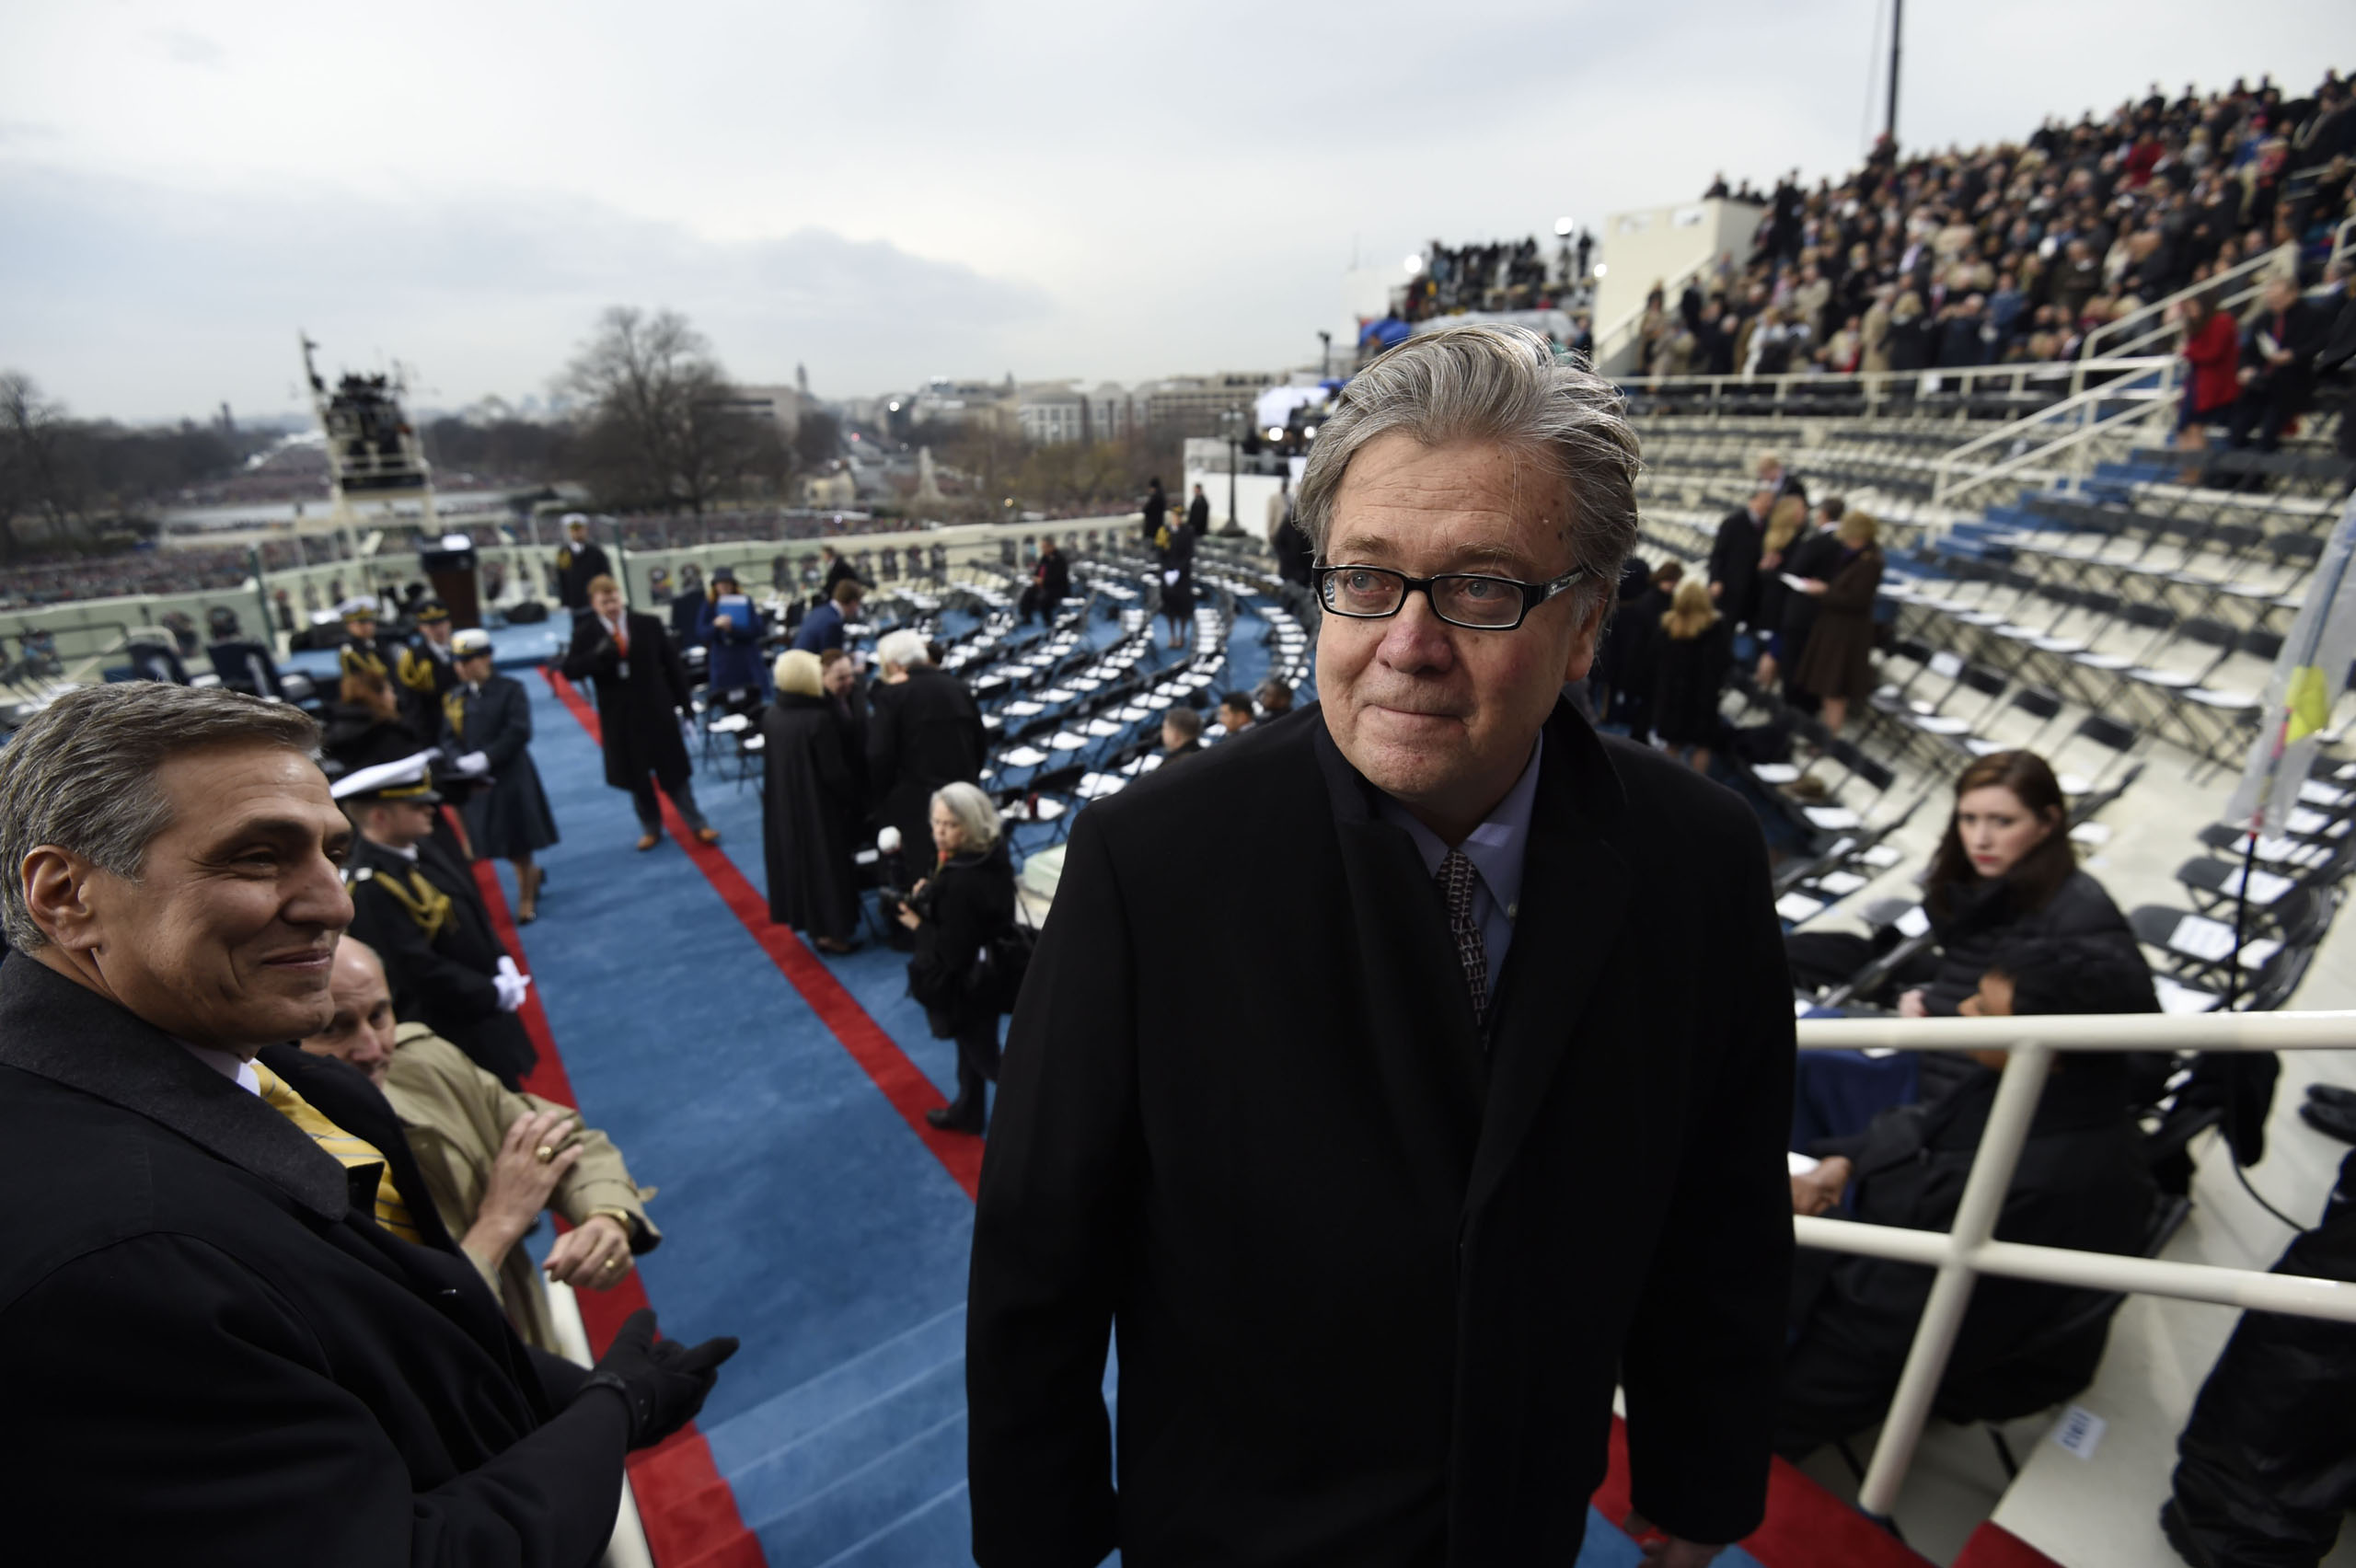 Steve Bannon, appointed chief strategist and senior counselor to President-elect Donald Trump, arrives for the Presidential Inauguration  at the U.S. Capitol in Washington, D.C., Jan 20, 2017.